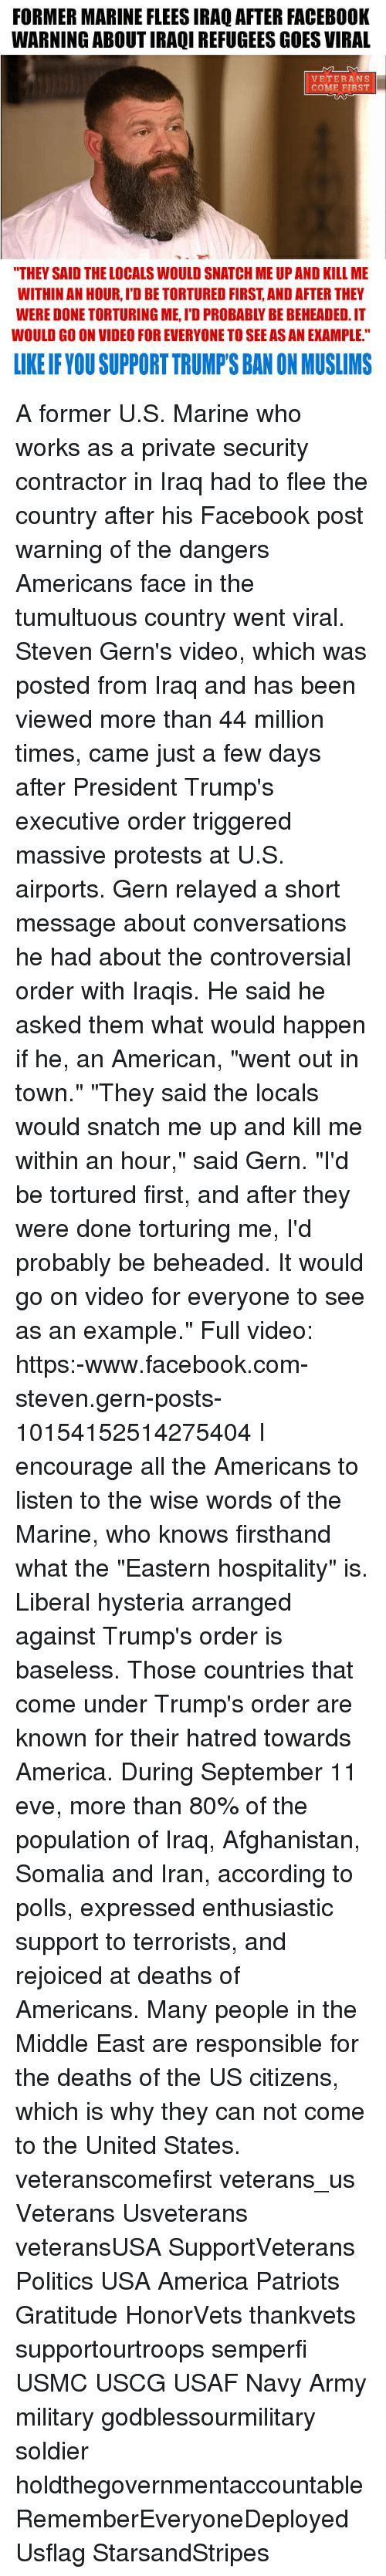 """relay: FORMER MARINE FLEESIRAQ AFTER FACEB00K  WARNINGABOUTIRAQIREFUGEES GOES VIRAL  VETERANS  COME FIRST  """"THEY SAID THELOCALS WOULD SNATCH ME UP AND KILL ME  WITHIN AN HOUR, IDBETORTURED FIRST AND AFTER THEY  WOULD GO ON VIDEO FOR EVERYONE TO SEE AS AN EXAMPLE.""""  LIKE IF YOU SUPPORT TRUMPSBANON MUSLIMS A former U.S. Marine who works as a private security contractor in Iraq had to flee the country after his Facebook post warning of the dangers Americans face in the tumultuous country went viral. Steven Gern's video, which was posted from Iraq and has been viewed more than 44 million times, came just a few days after President Trump's executive order triggered massive protests at U.S. airports. Gern relayed a short message about conversations he had about the controversial order with Iraqis. He said he asked them what would happen if he, an American, """"went out in town."""" """"They said the locals would snatch me up and kill me within an hour,"""" said Gern. """"I'd be tortured first, and after they were done torturing me, I'd probably be beheaded. It would go on video for everyone to see as an example."""" Full video: https:-www.facebook.com-steven.gern-posts-10154152514275404 I encourage all the Americans to listen to the wise words of the Marine, who knows firsthand what the """"Eastern hospitality"""" is. Liberal hysteria arranged against Trump's order is baseless. Those countries that come under Trump's order are known for their hatred towards America. During September 11 eve, more than 80% of the population of Iraq, Afghanistan, Somalia and Iran, according to polls, expressed enthusiastic support to terrorists, and rejoiced at deaths of Americans. Many people in the Middle East are responsible for the deaths of the US citizens, which is why they can not come to the United States. veteranscomefirst veterans_us Veterans Usveterans veteransUSA SupportVeterans Politics USA America Patriots Gratitude HonorVets thankvets supportourtroops semperfi USMC USCG USAF Navy Army military godble"""